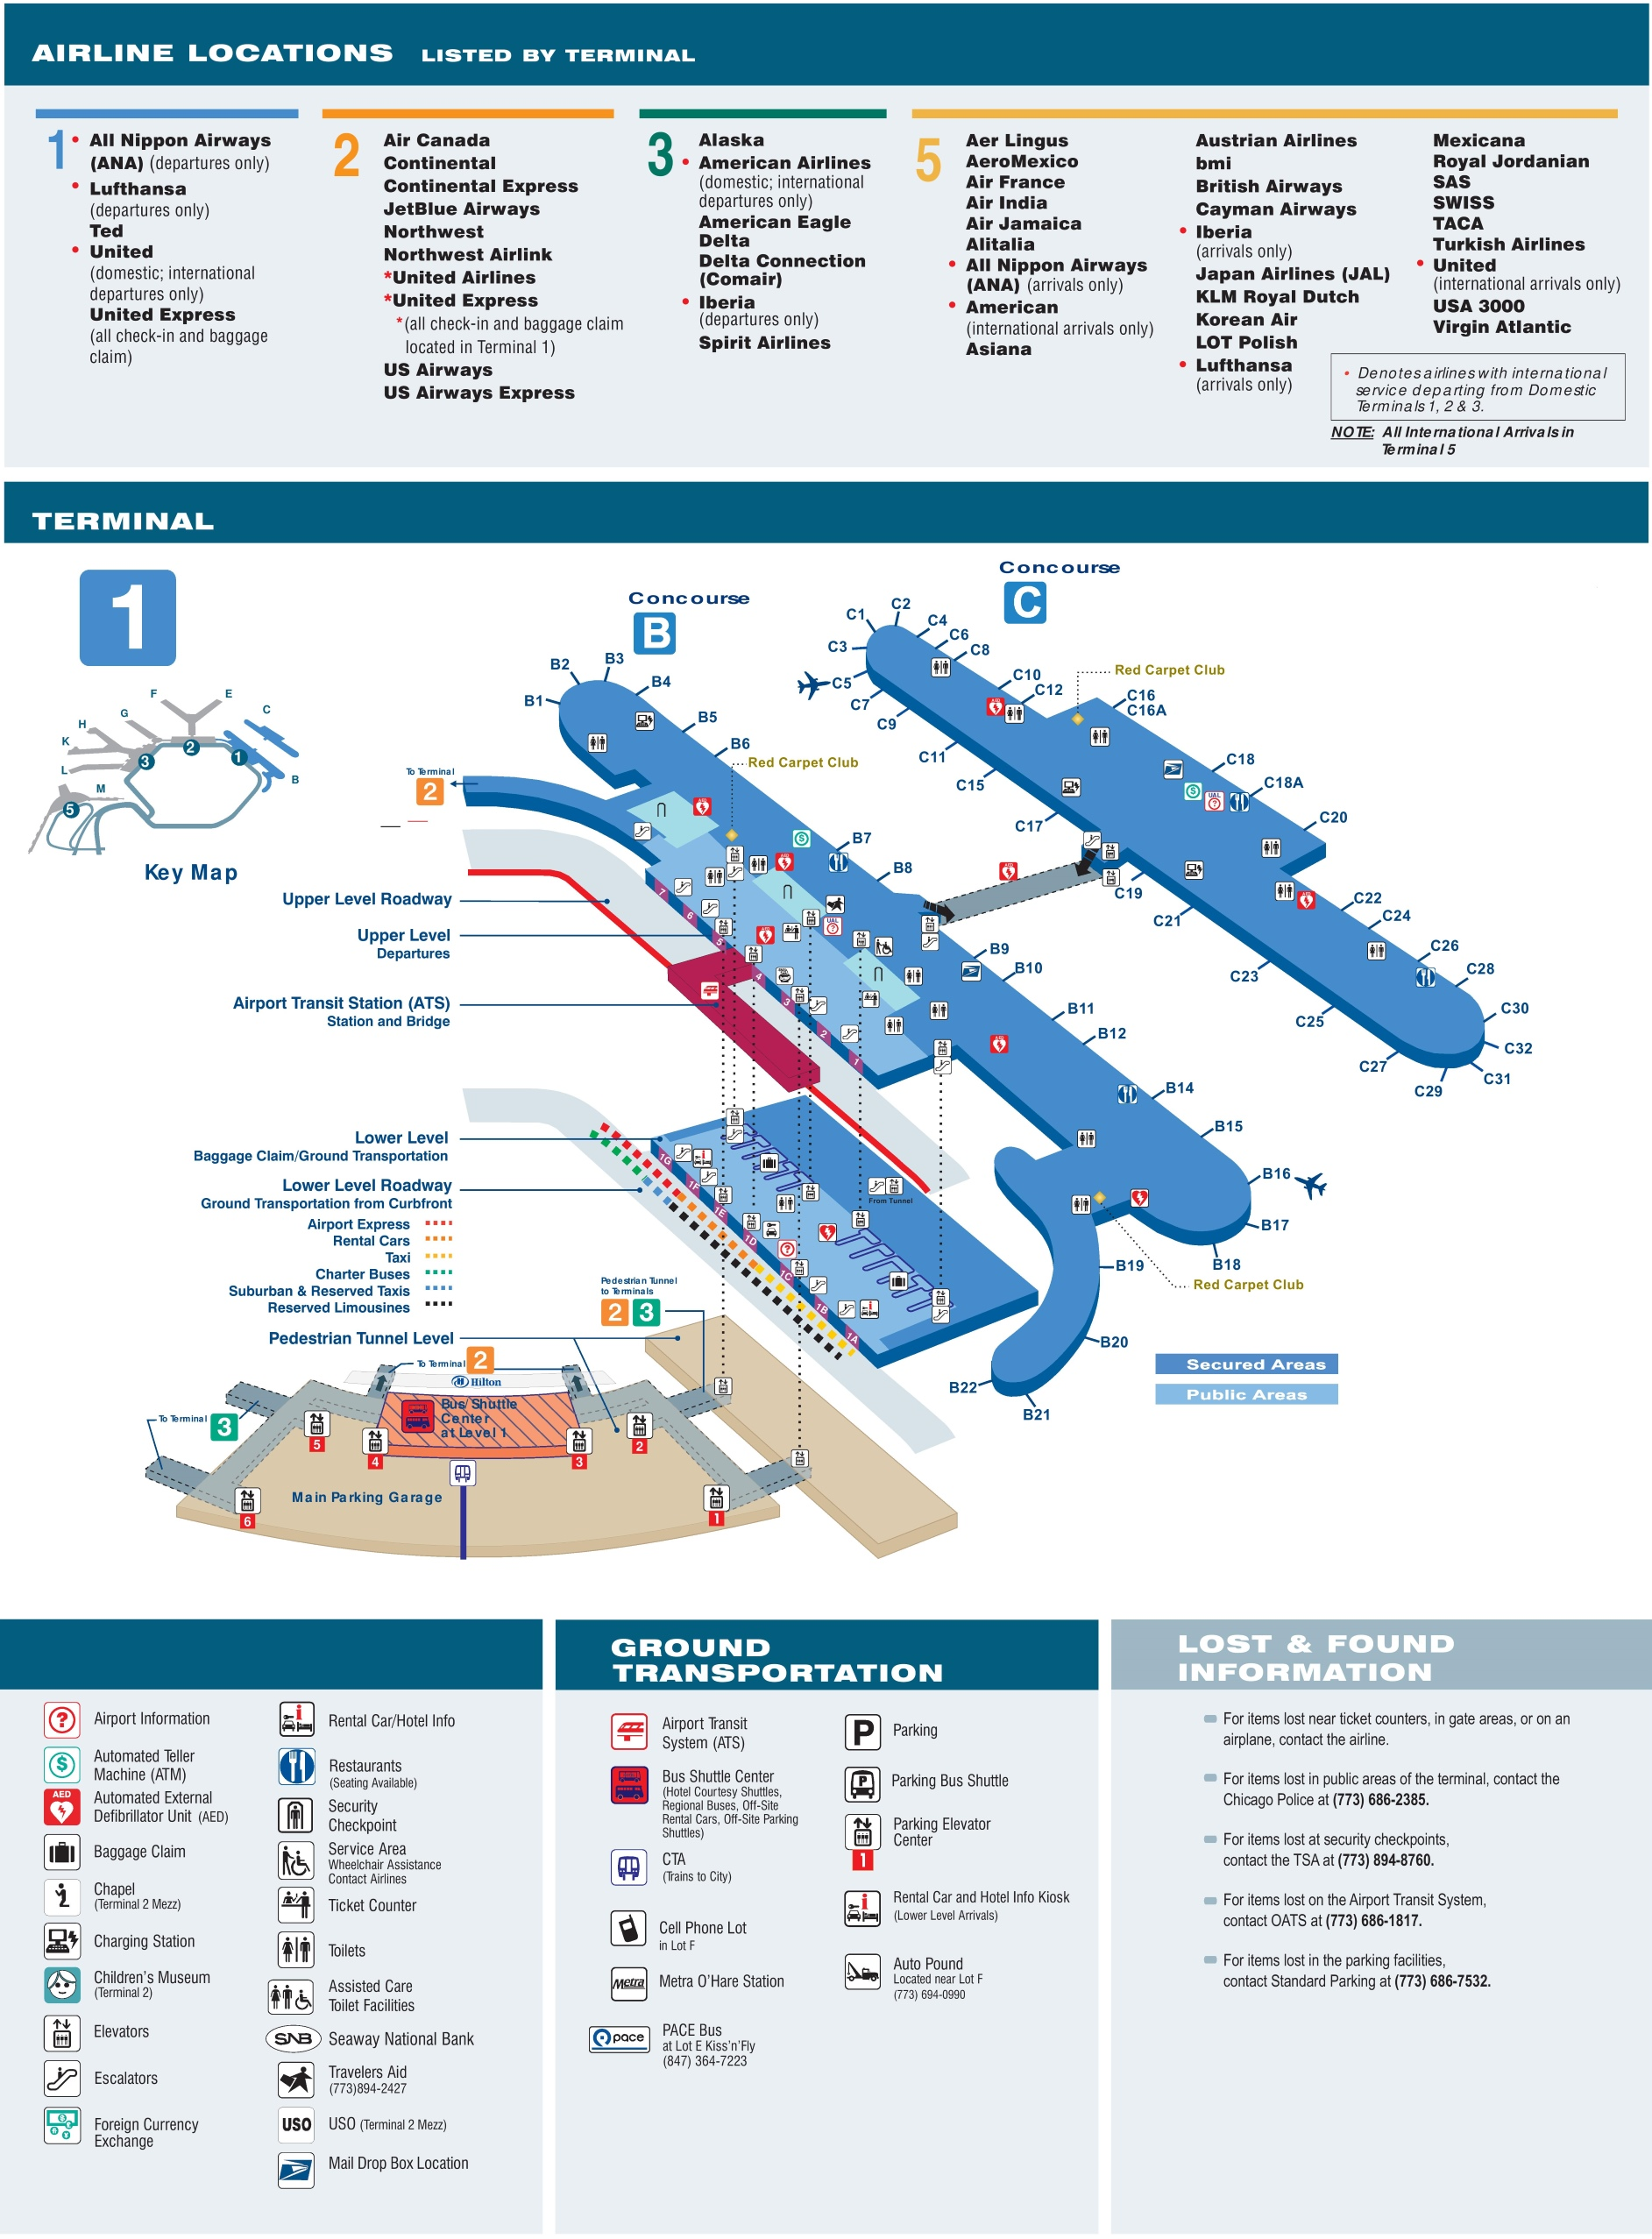 OHare Airport terminal 1 map